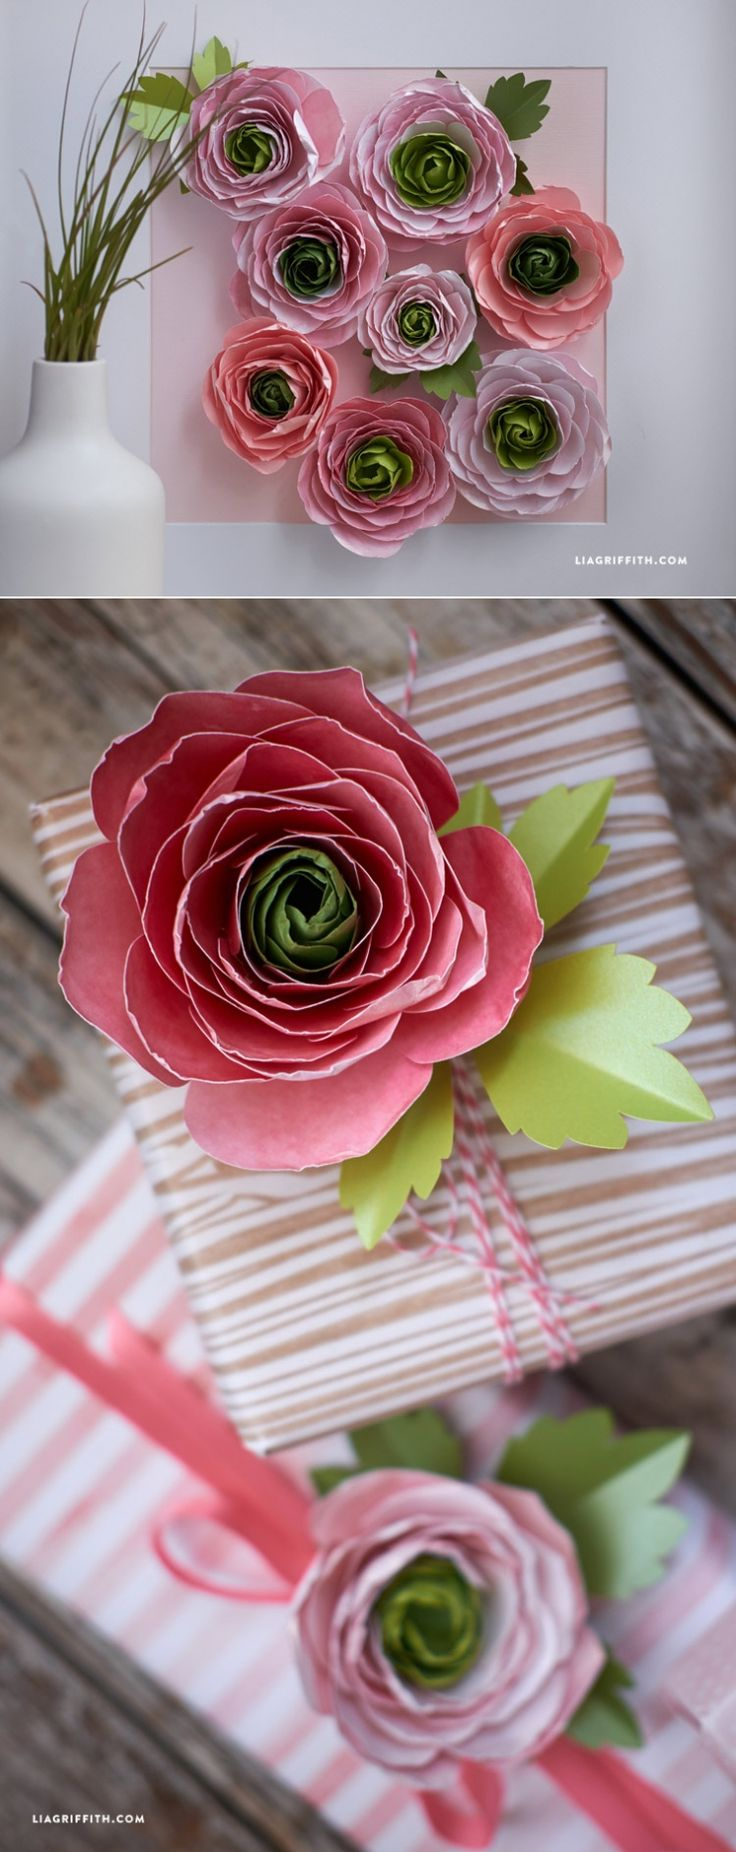 #PaperRanunculusFlowers #Paperflowers www.LiaGriffith.com: